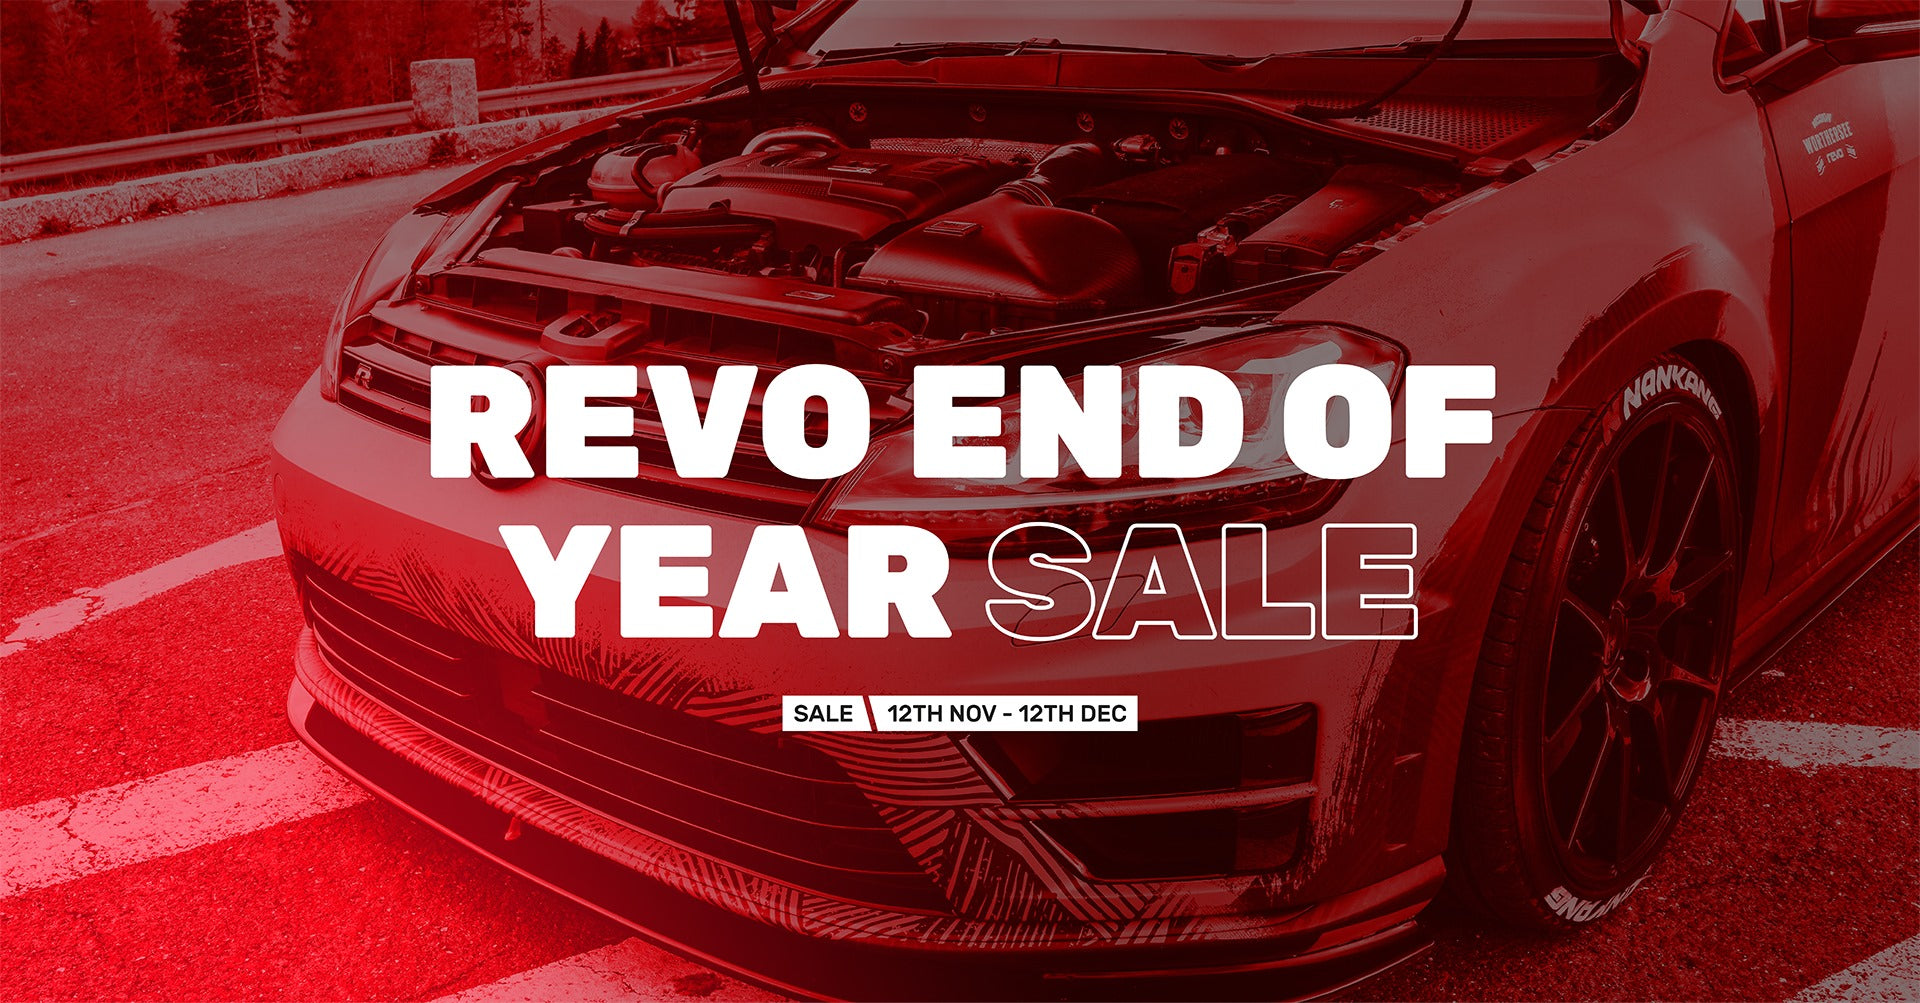 Revo End of Year Sale 2020